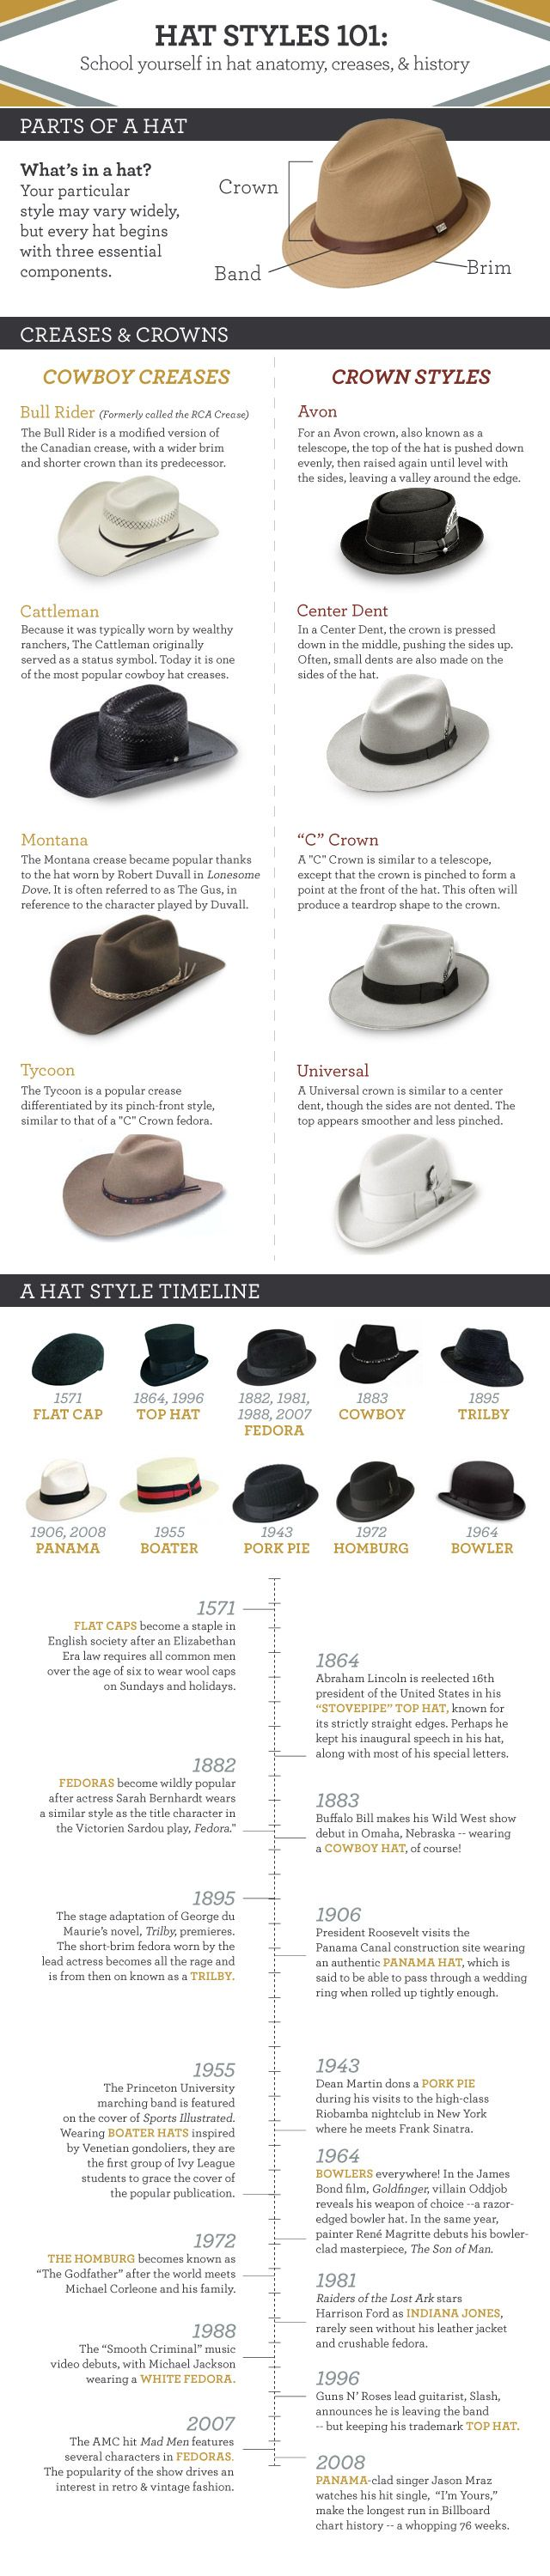 a fun hat infographic,